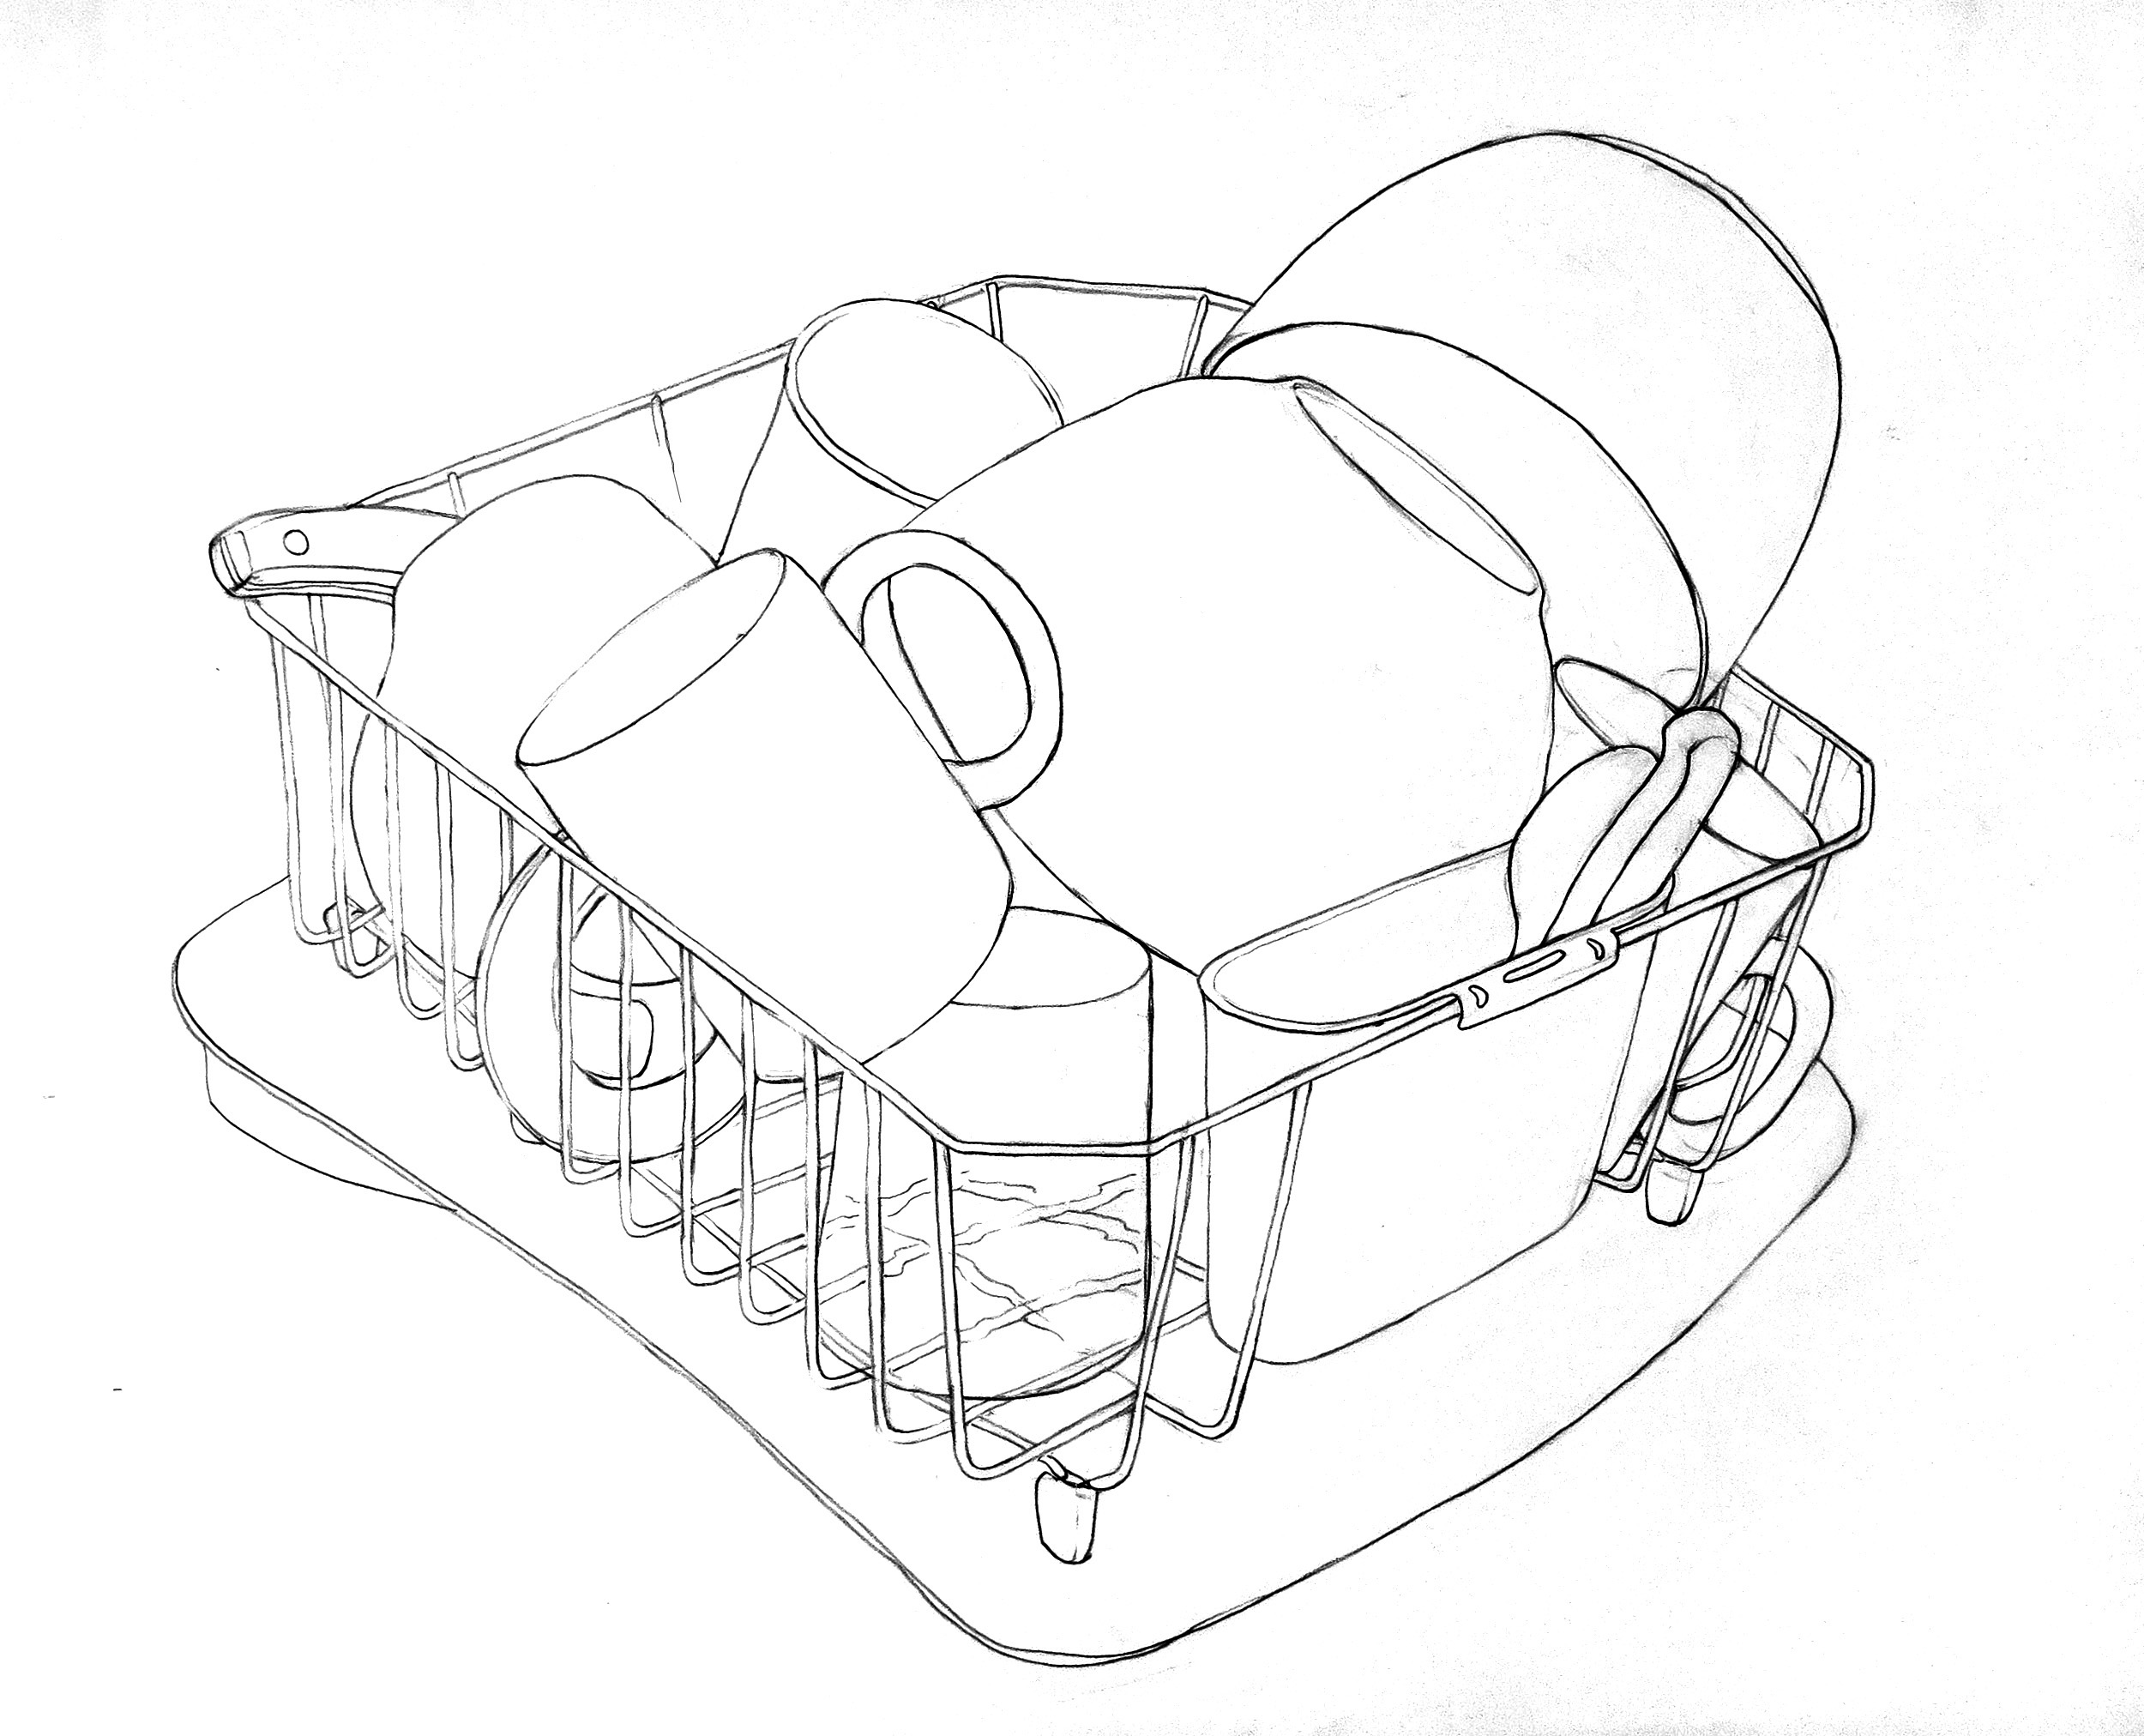 Line drawing of dishes in a rack.